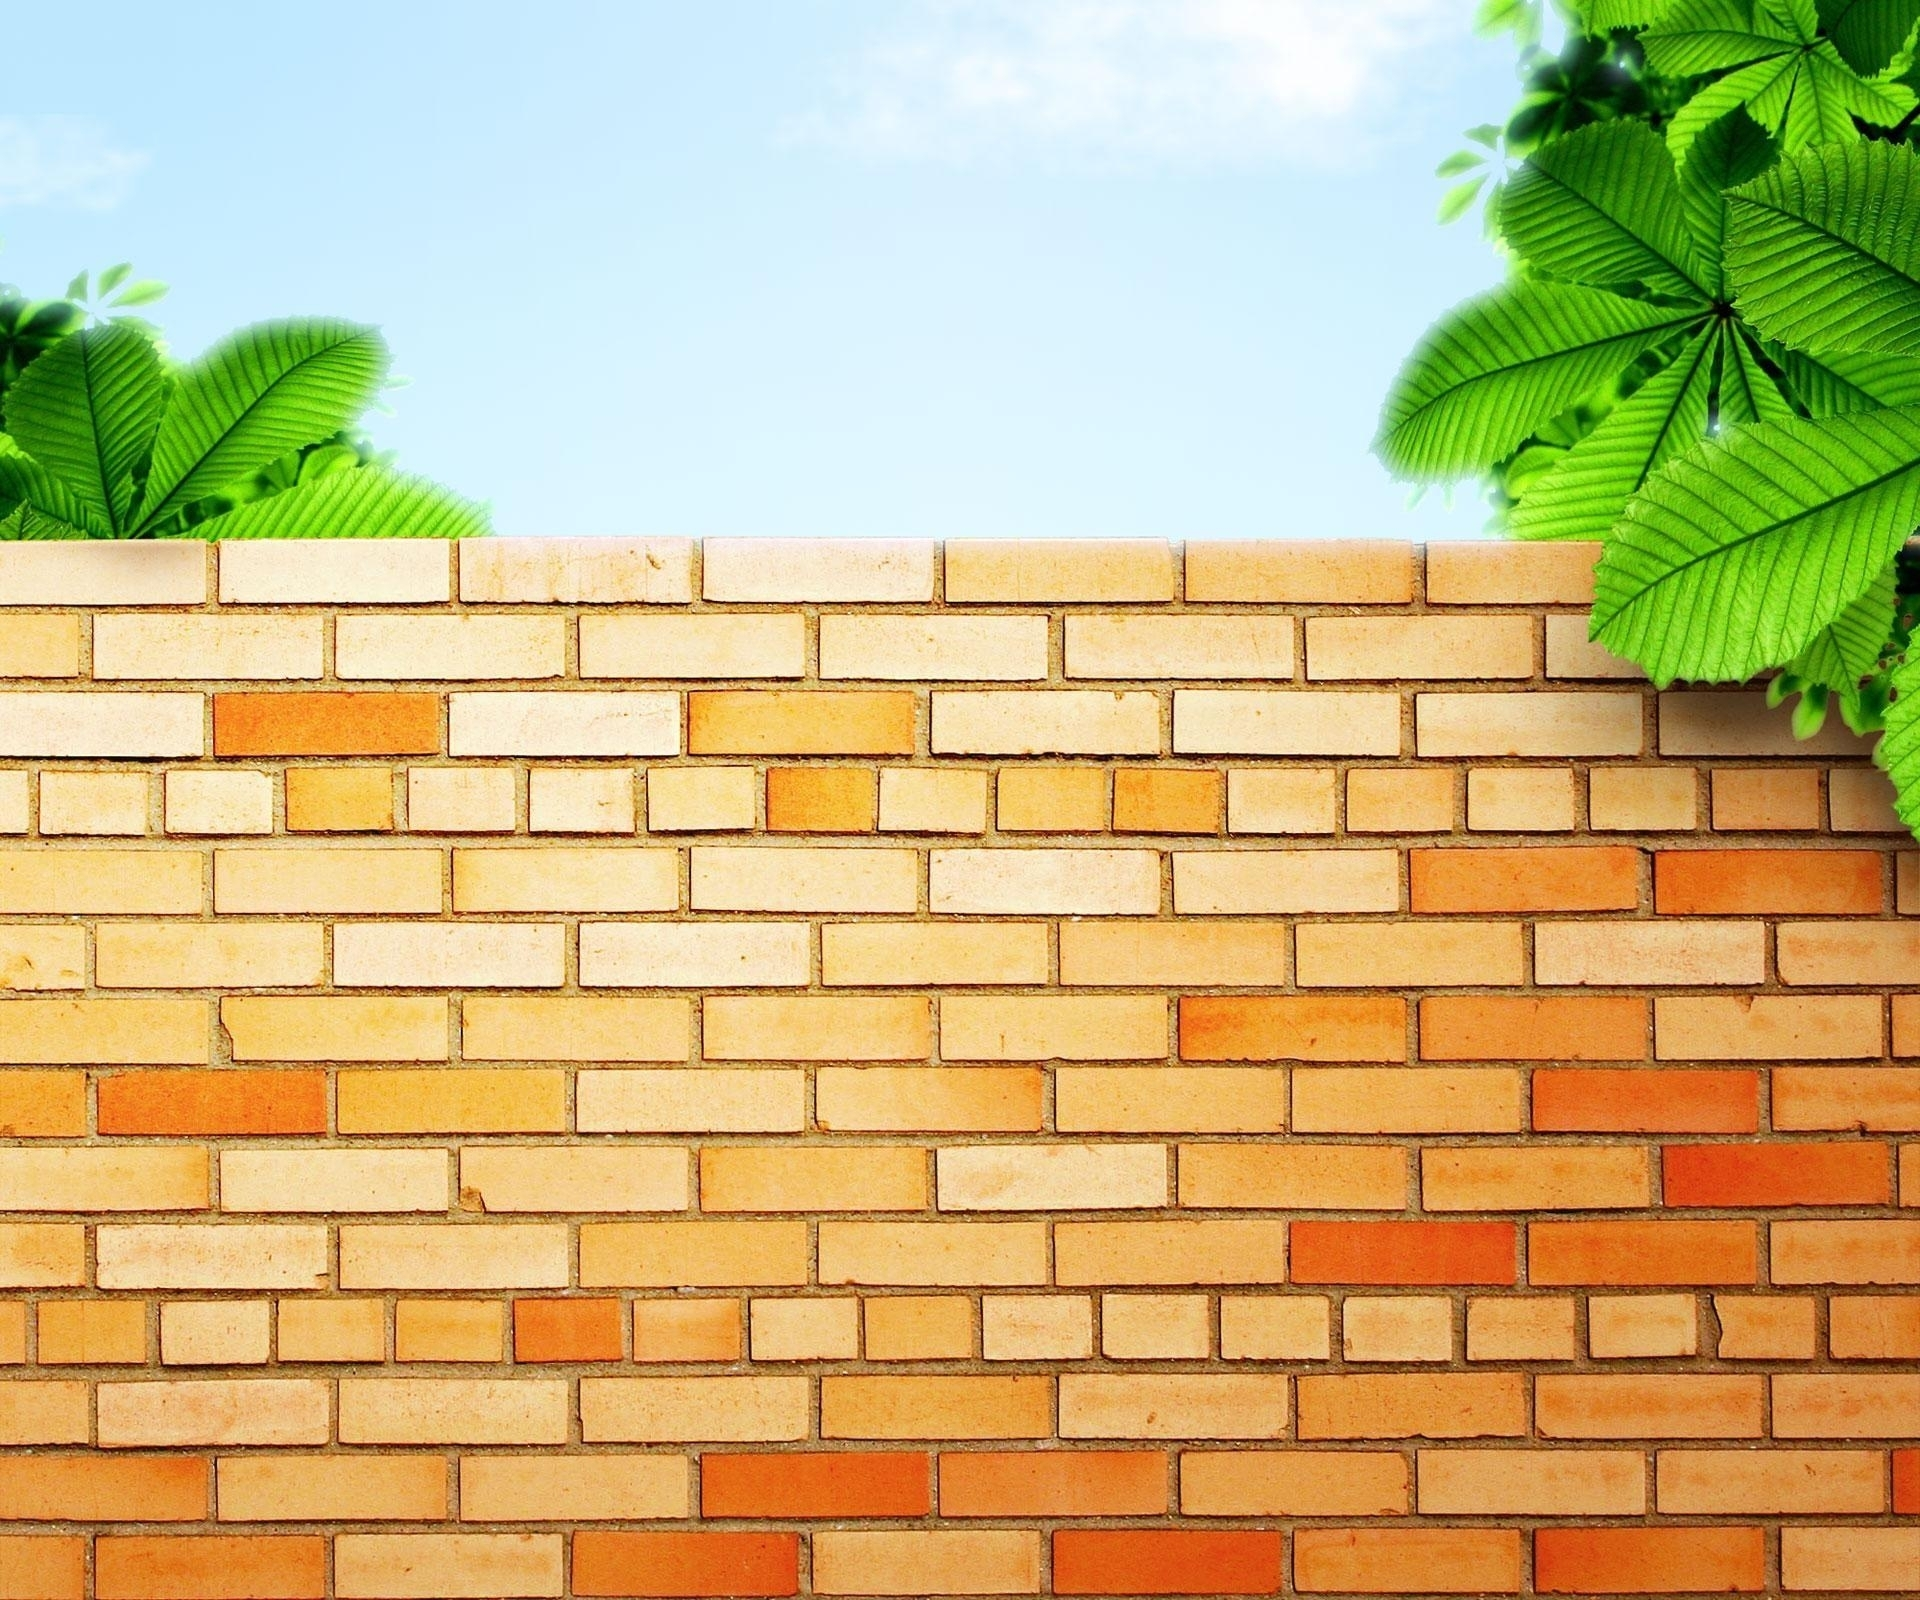 Brick wall background clipart Craftsman Compact » Clipart.